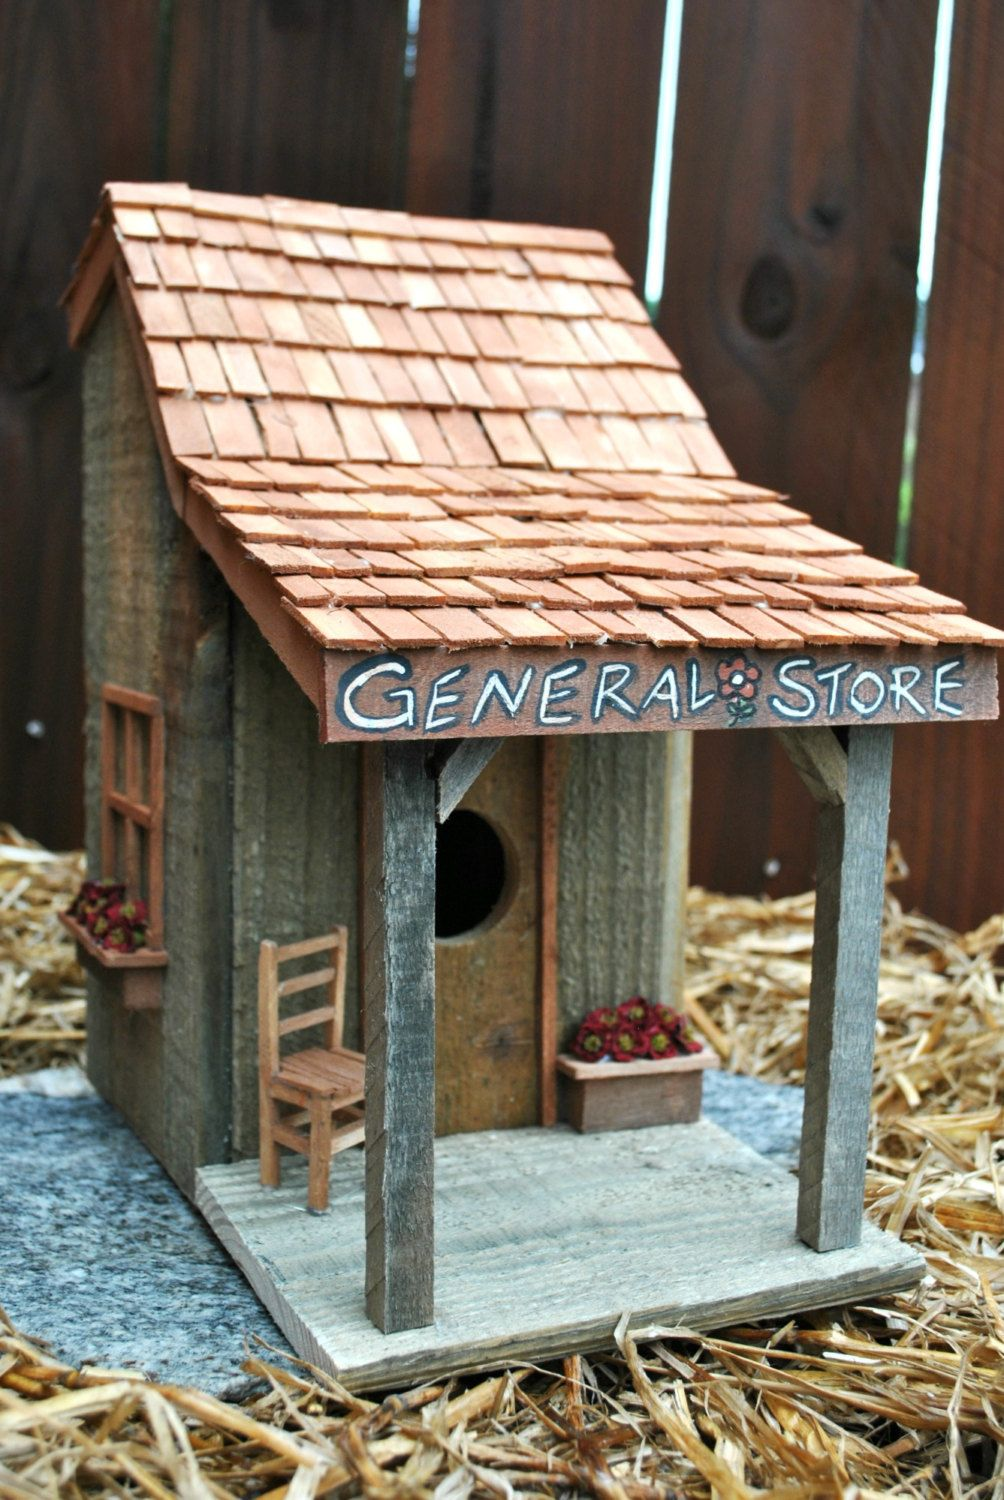 Admirable Birdhouse Collection General Store By Rdenterprises On Home Interior And Landscaping Palasignezvosmurscom